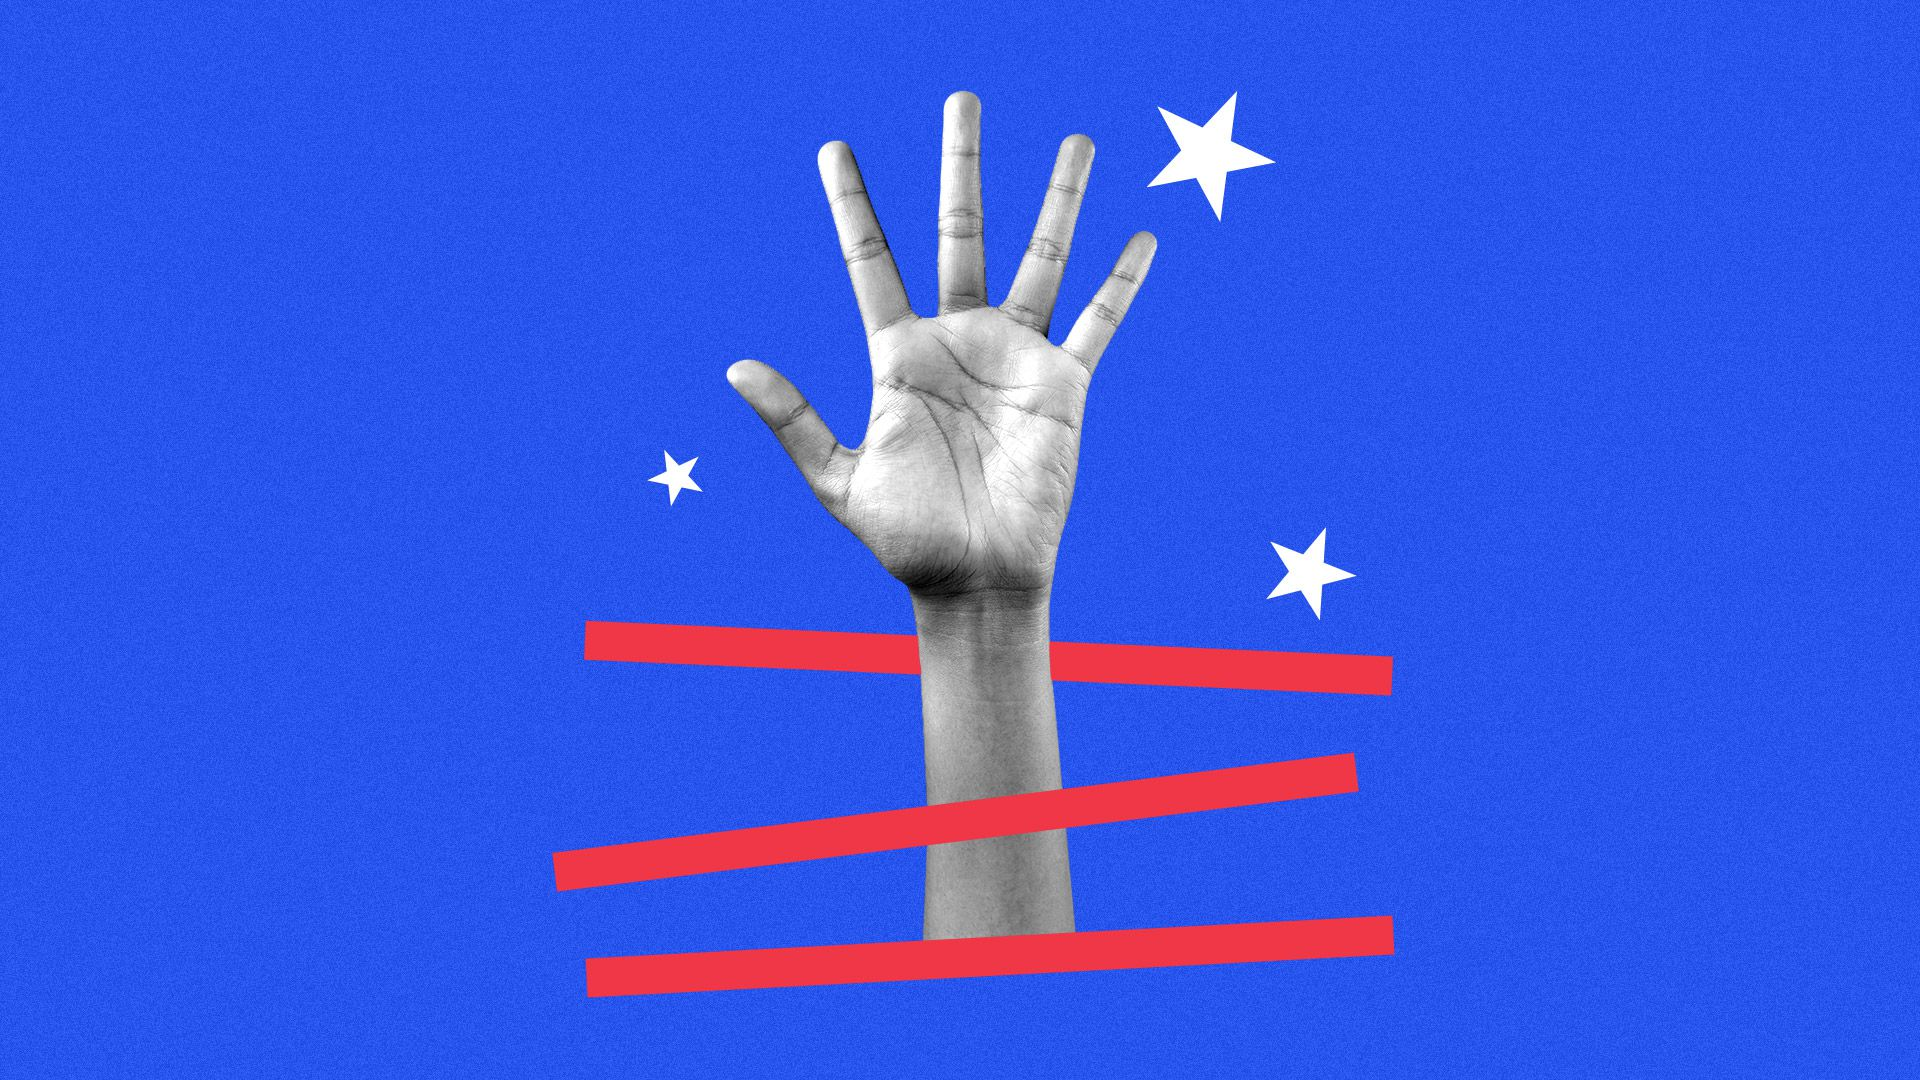 Collage illustration of a hand being raised in question with stars and stripes surrounding it.